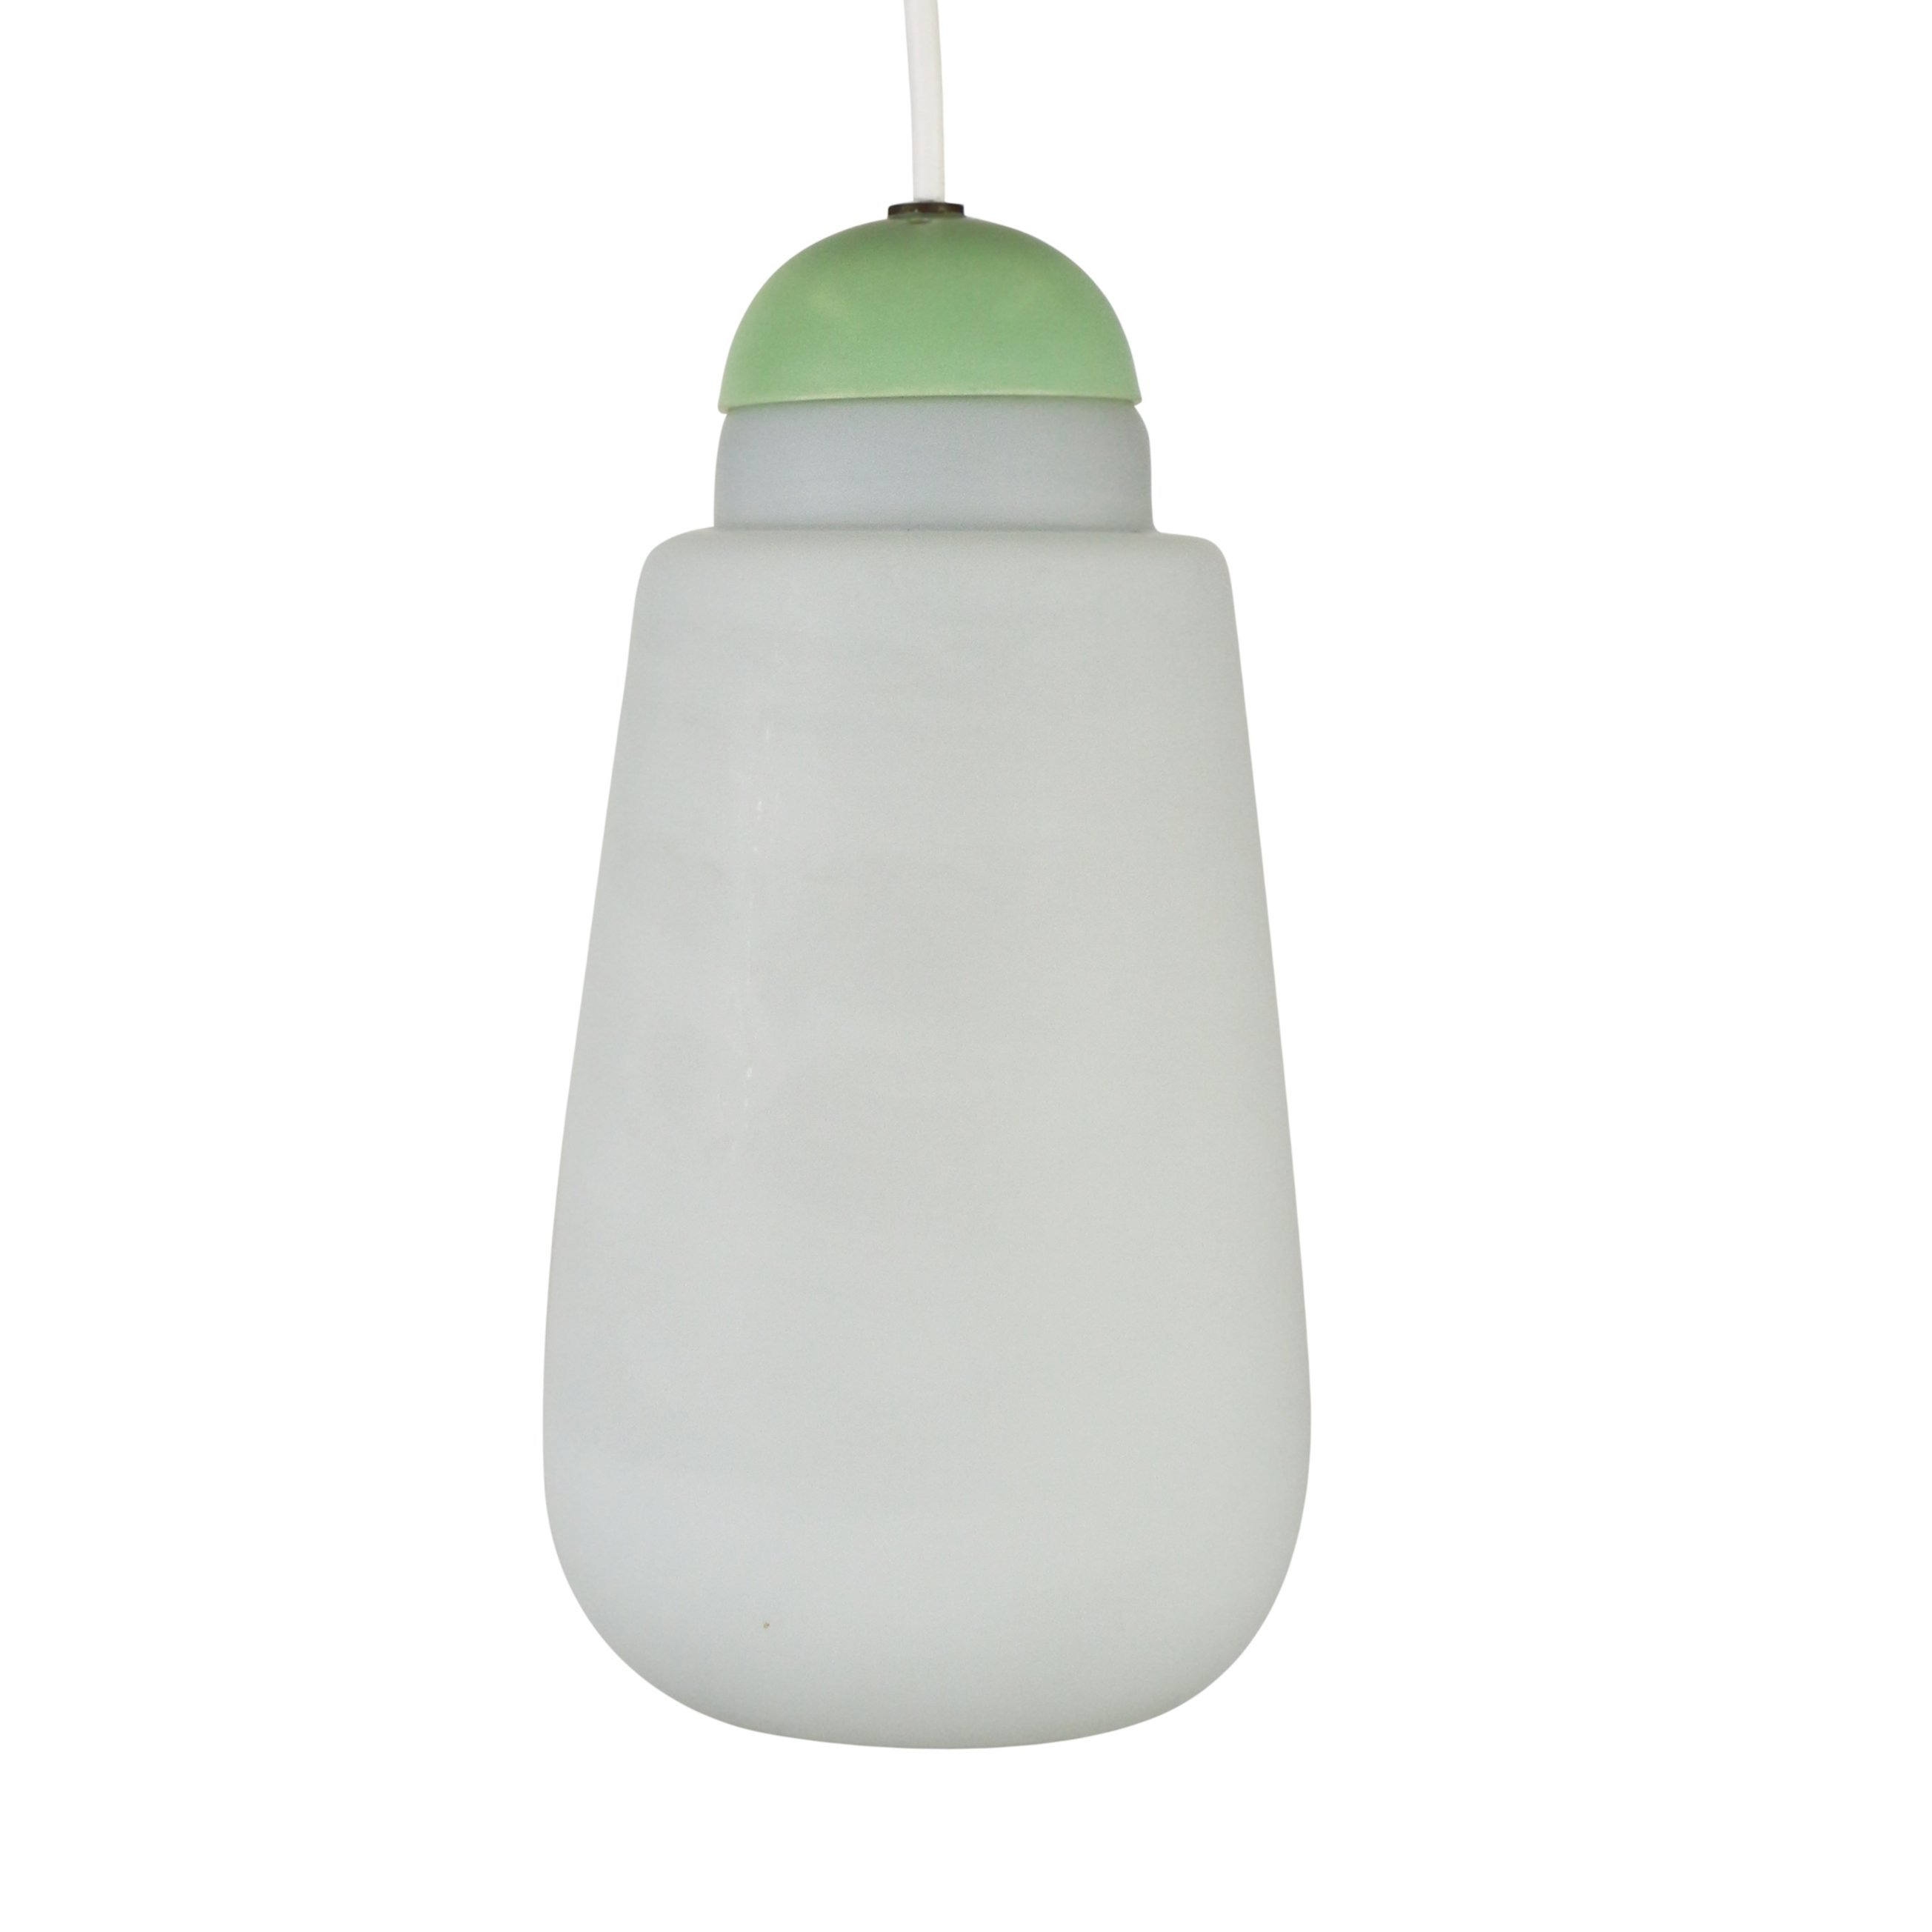 Milk glass pendant by philips with a pastel green top 1960s 60344 milk glass pendant by philips with a pastel green top 1960s mozeypictures Choice Image